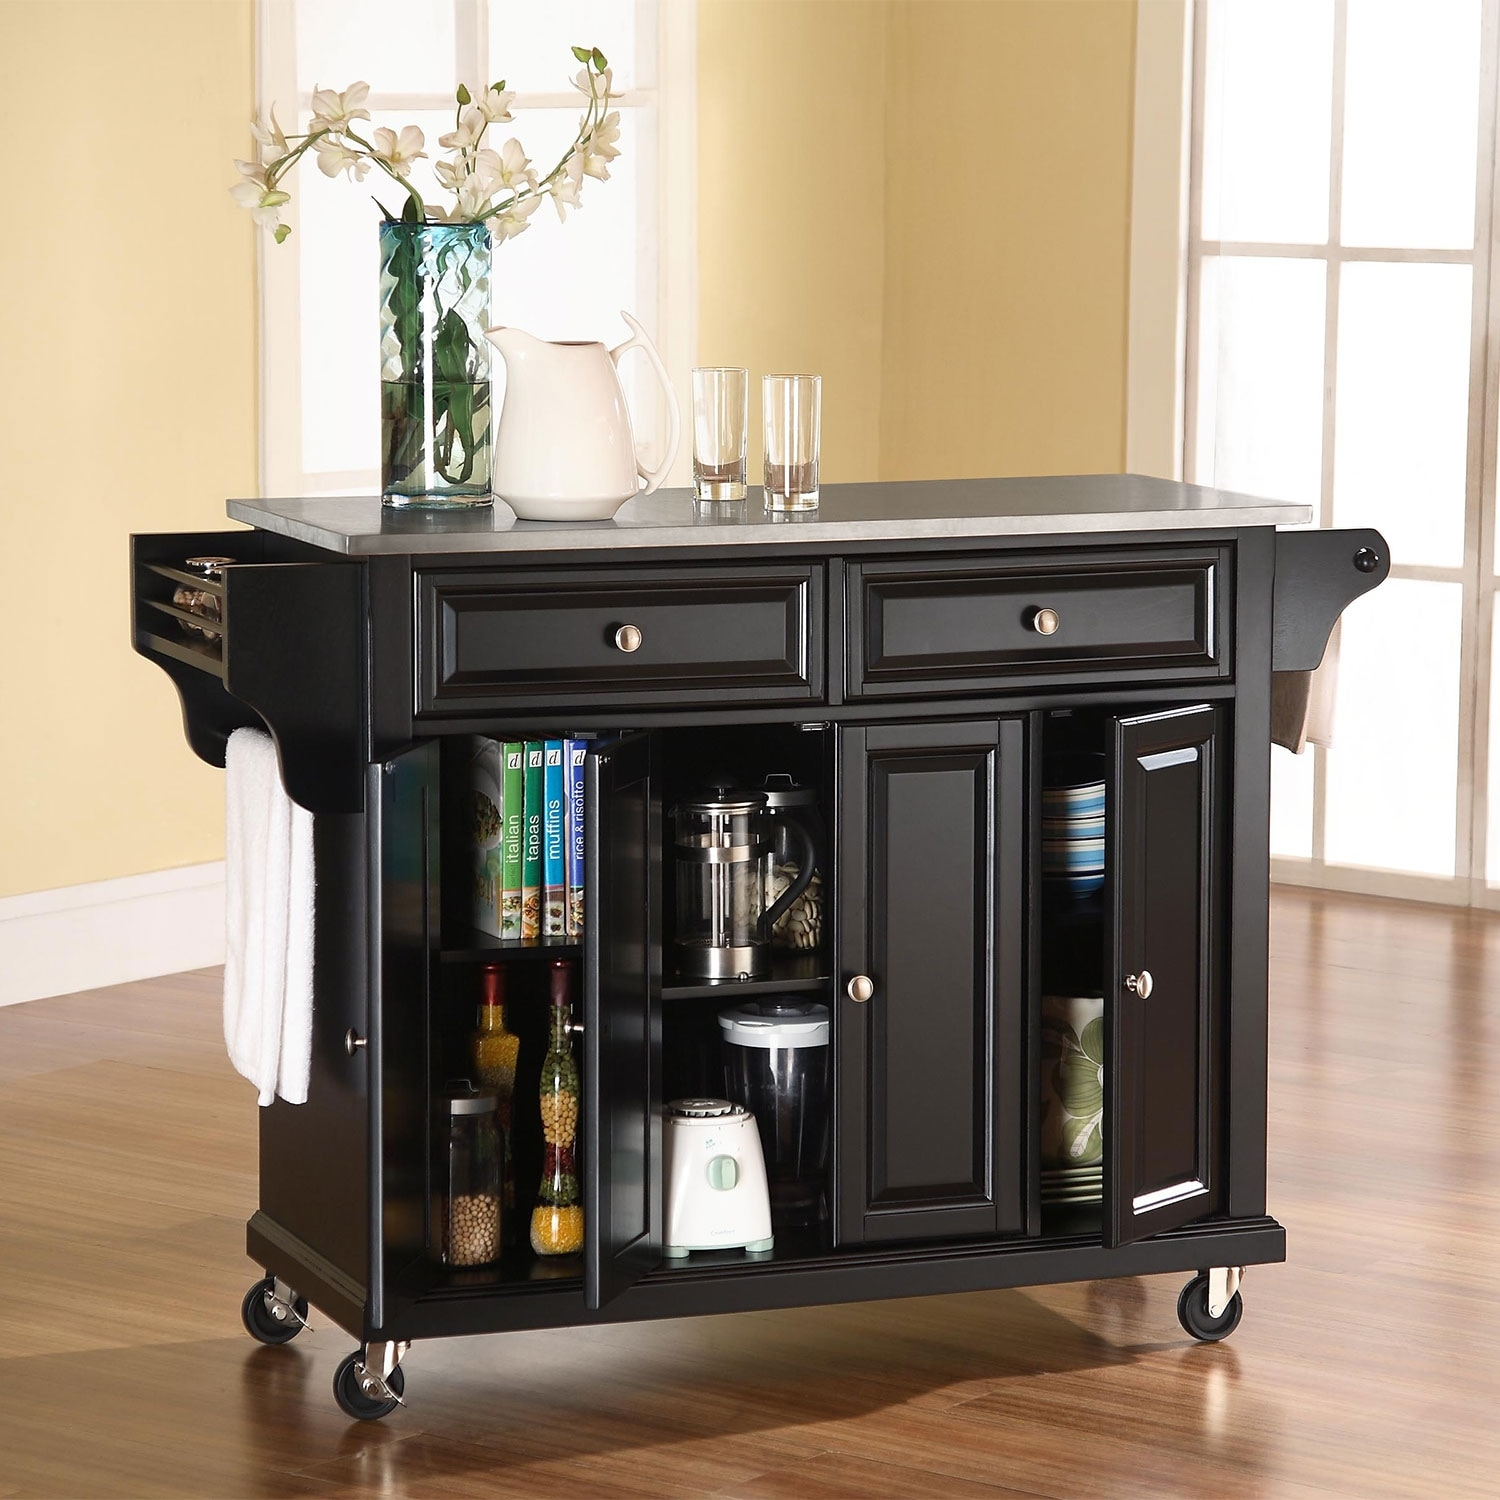 Lockable Dvd Storage Cabinet Kitchen Storage Cabinets Walmart Kitchen Wayfair And Walmart